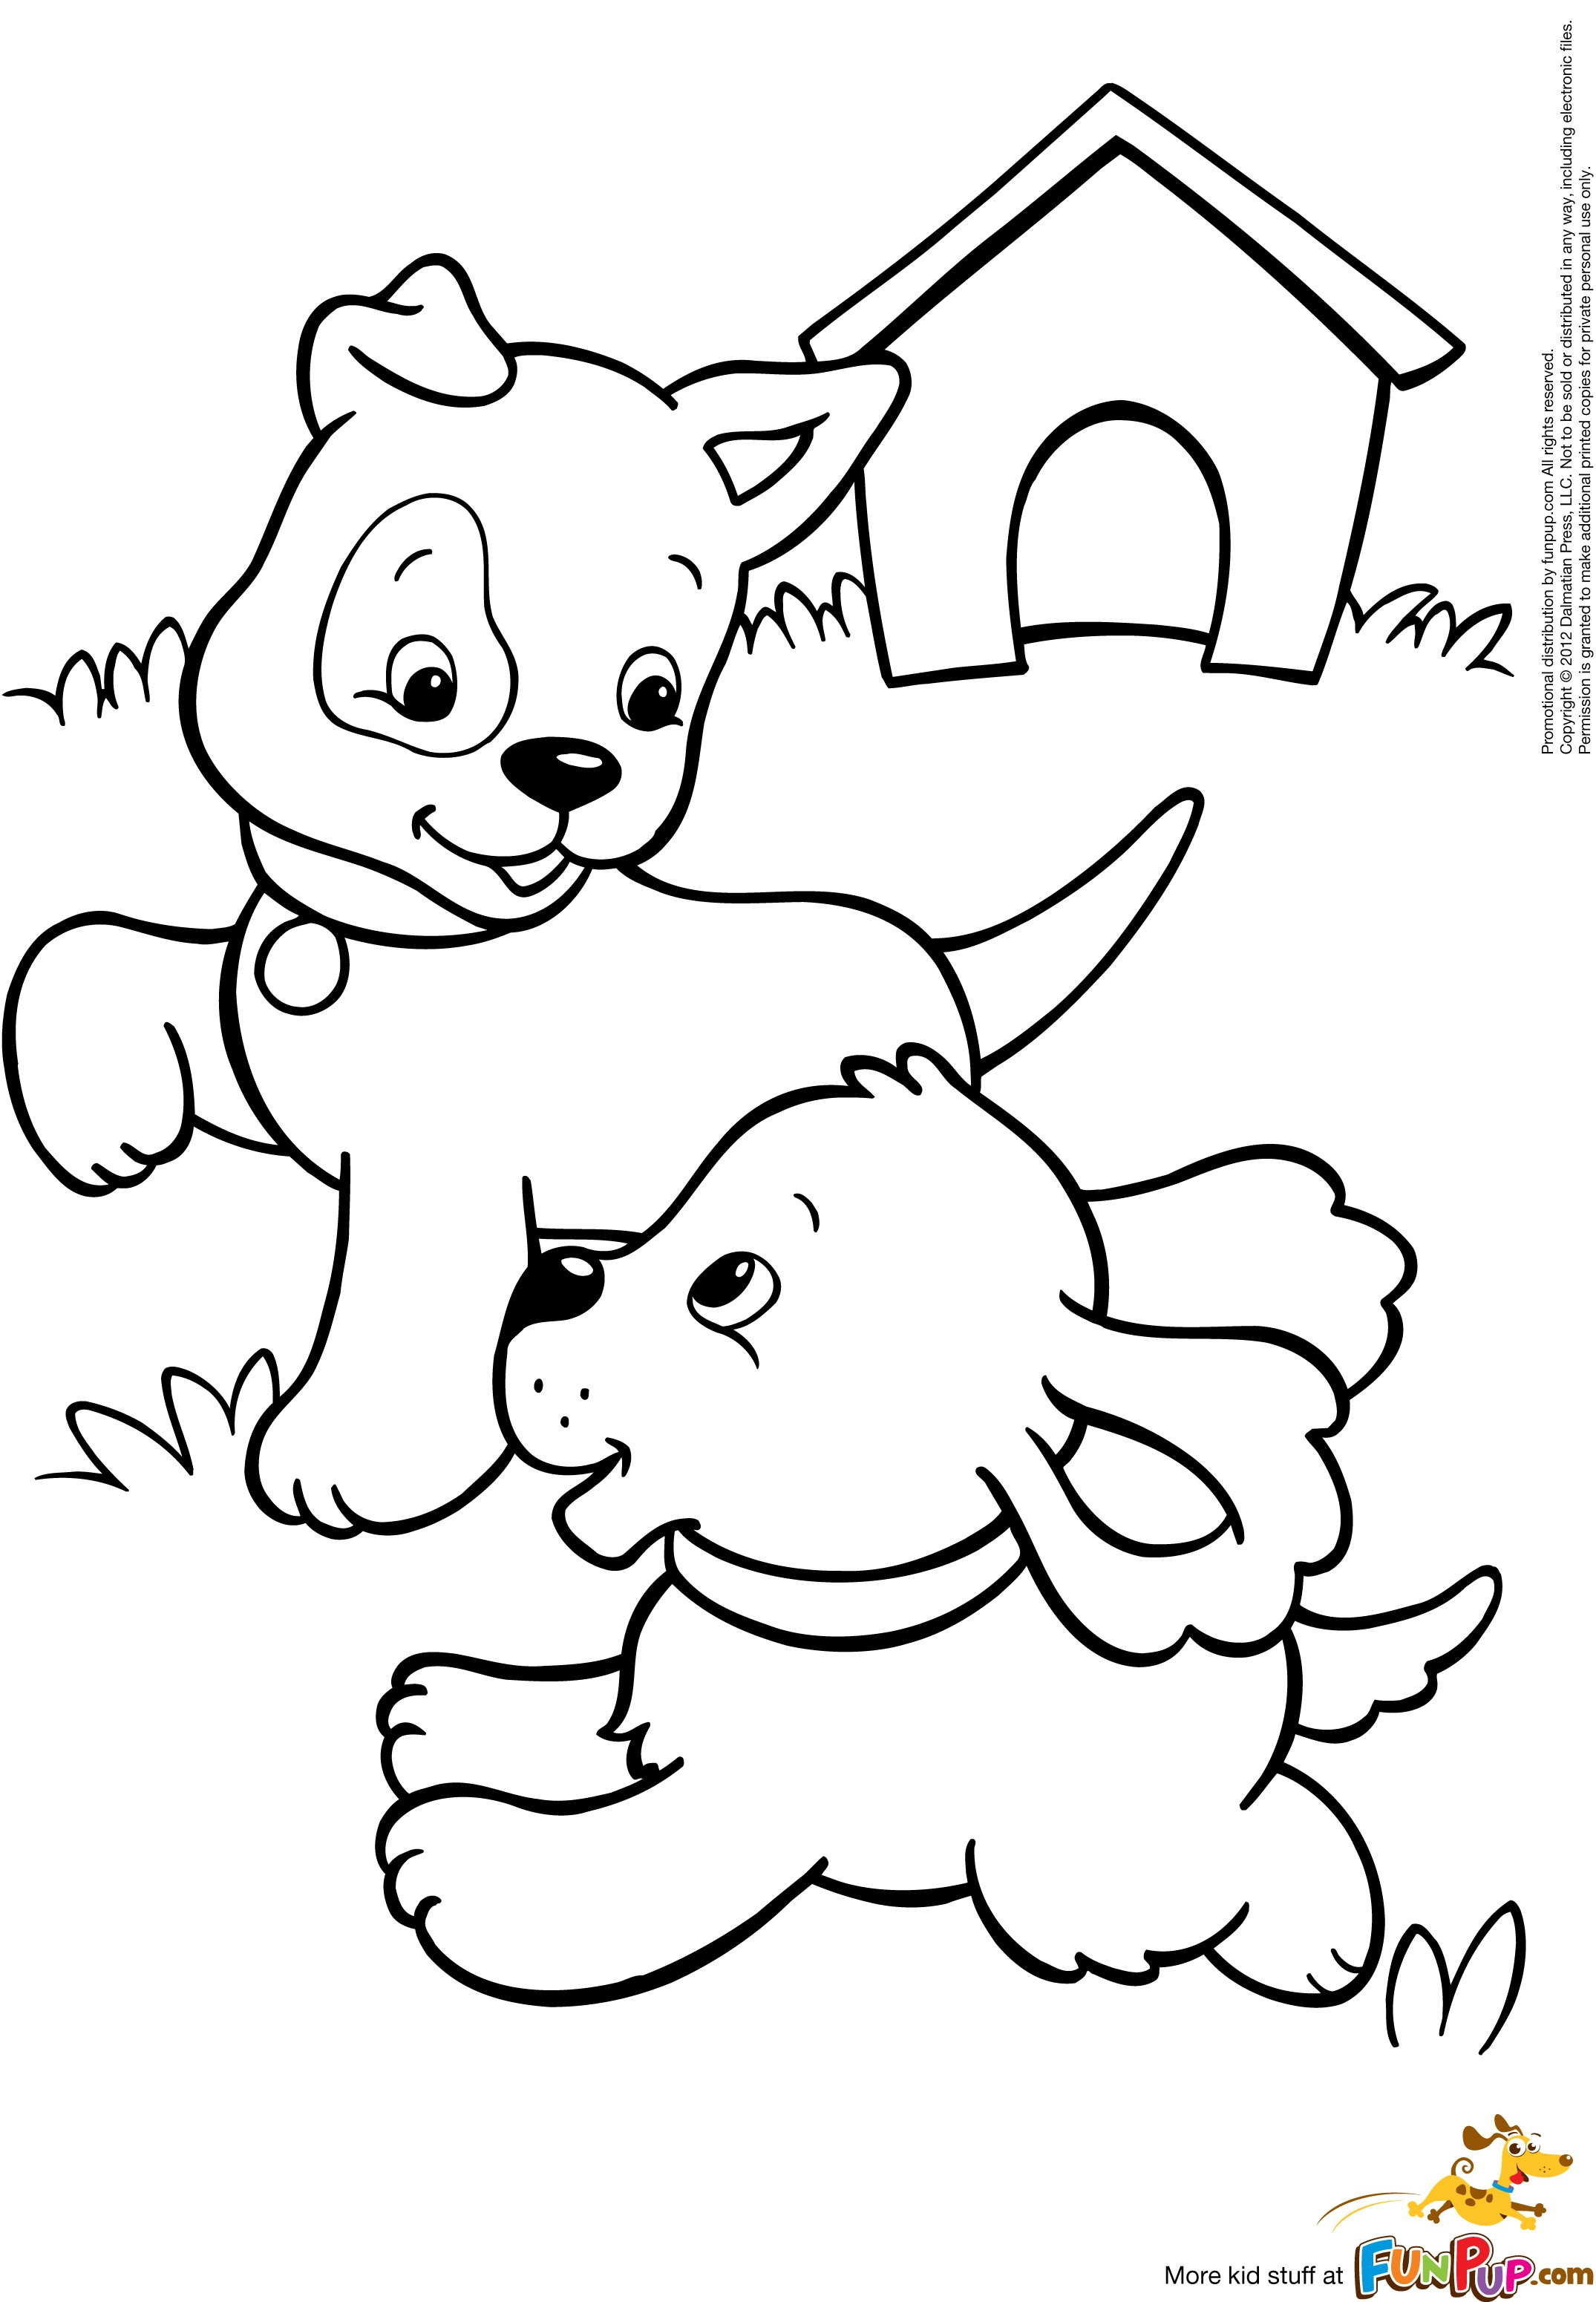 puppy coloring pages printable free free printable puppies coloring pages for kids printable coloring pages puppy free